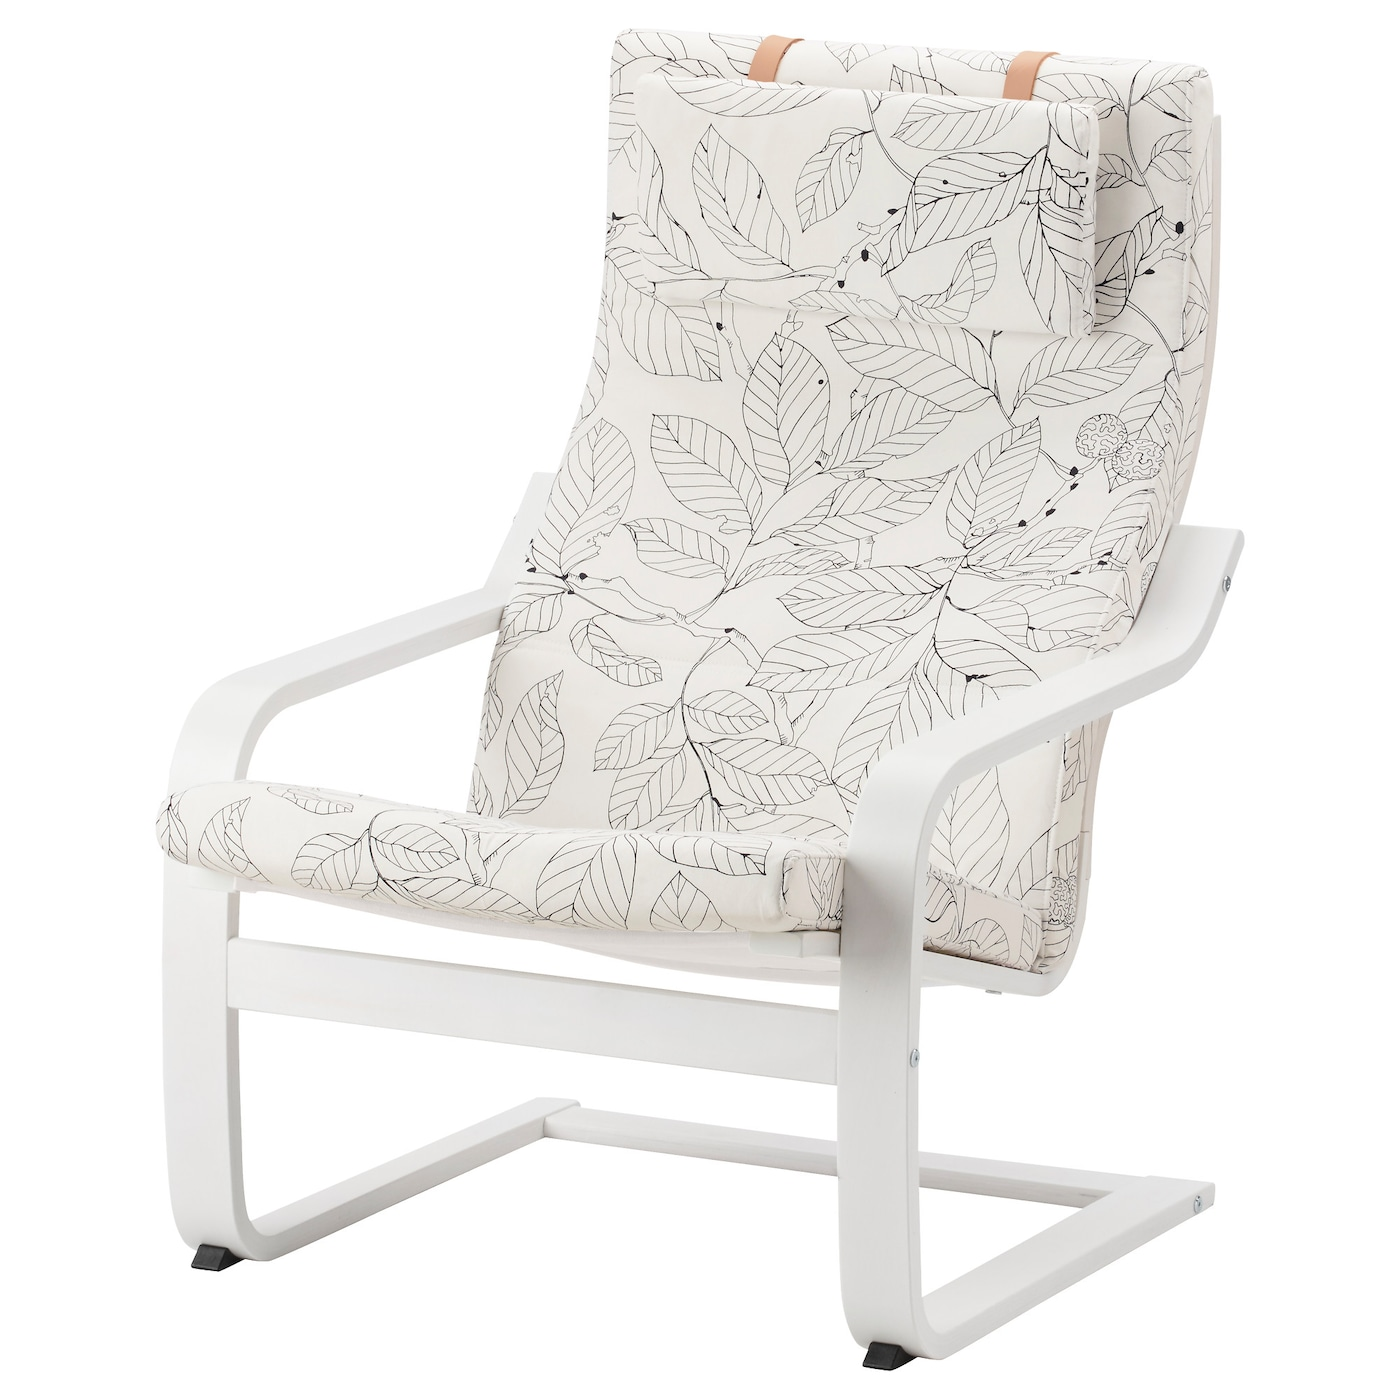 IKEA POÄNG Armchair The Cover Is Easy To Keep Clean As It Is Removable And  Can